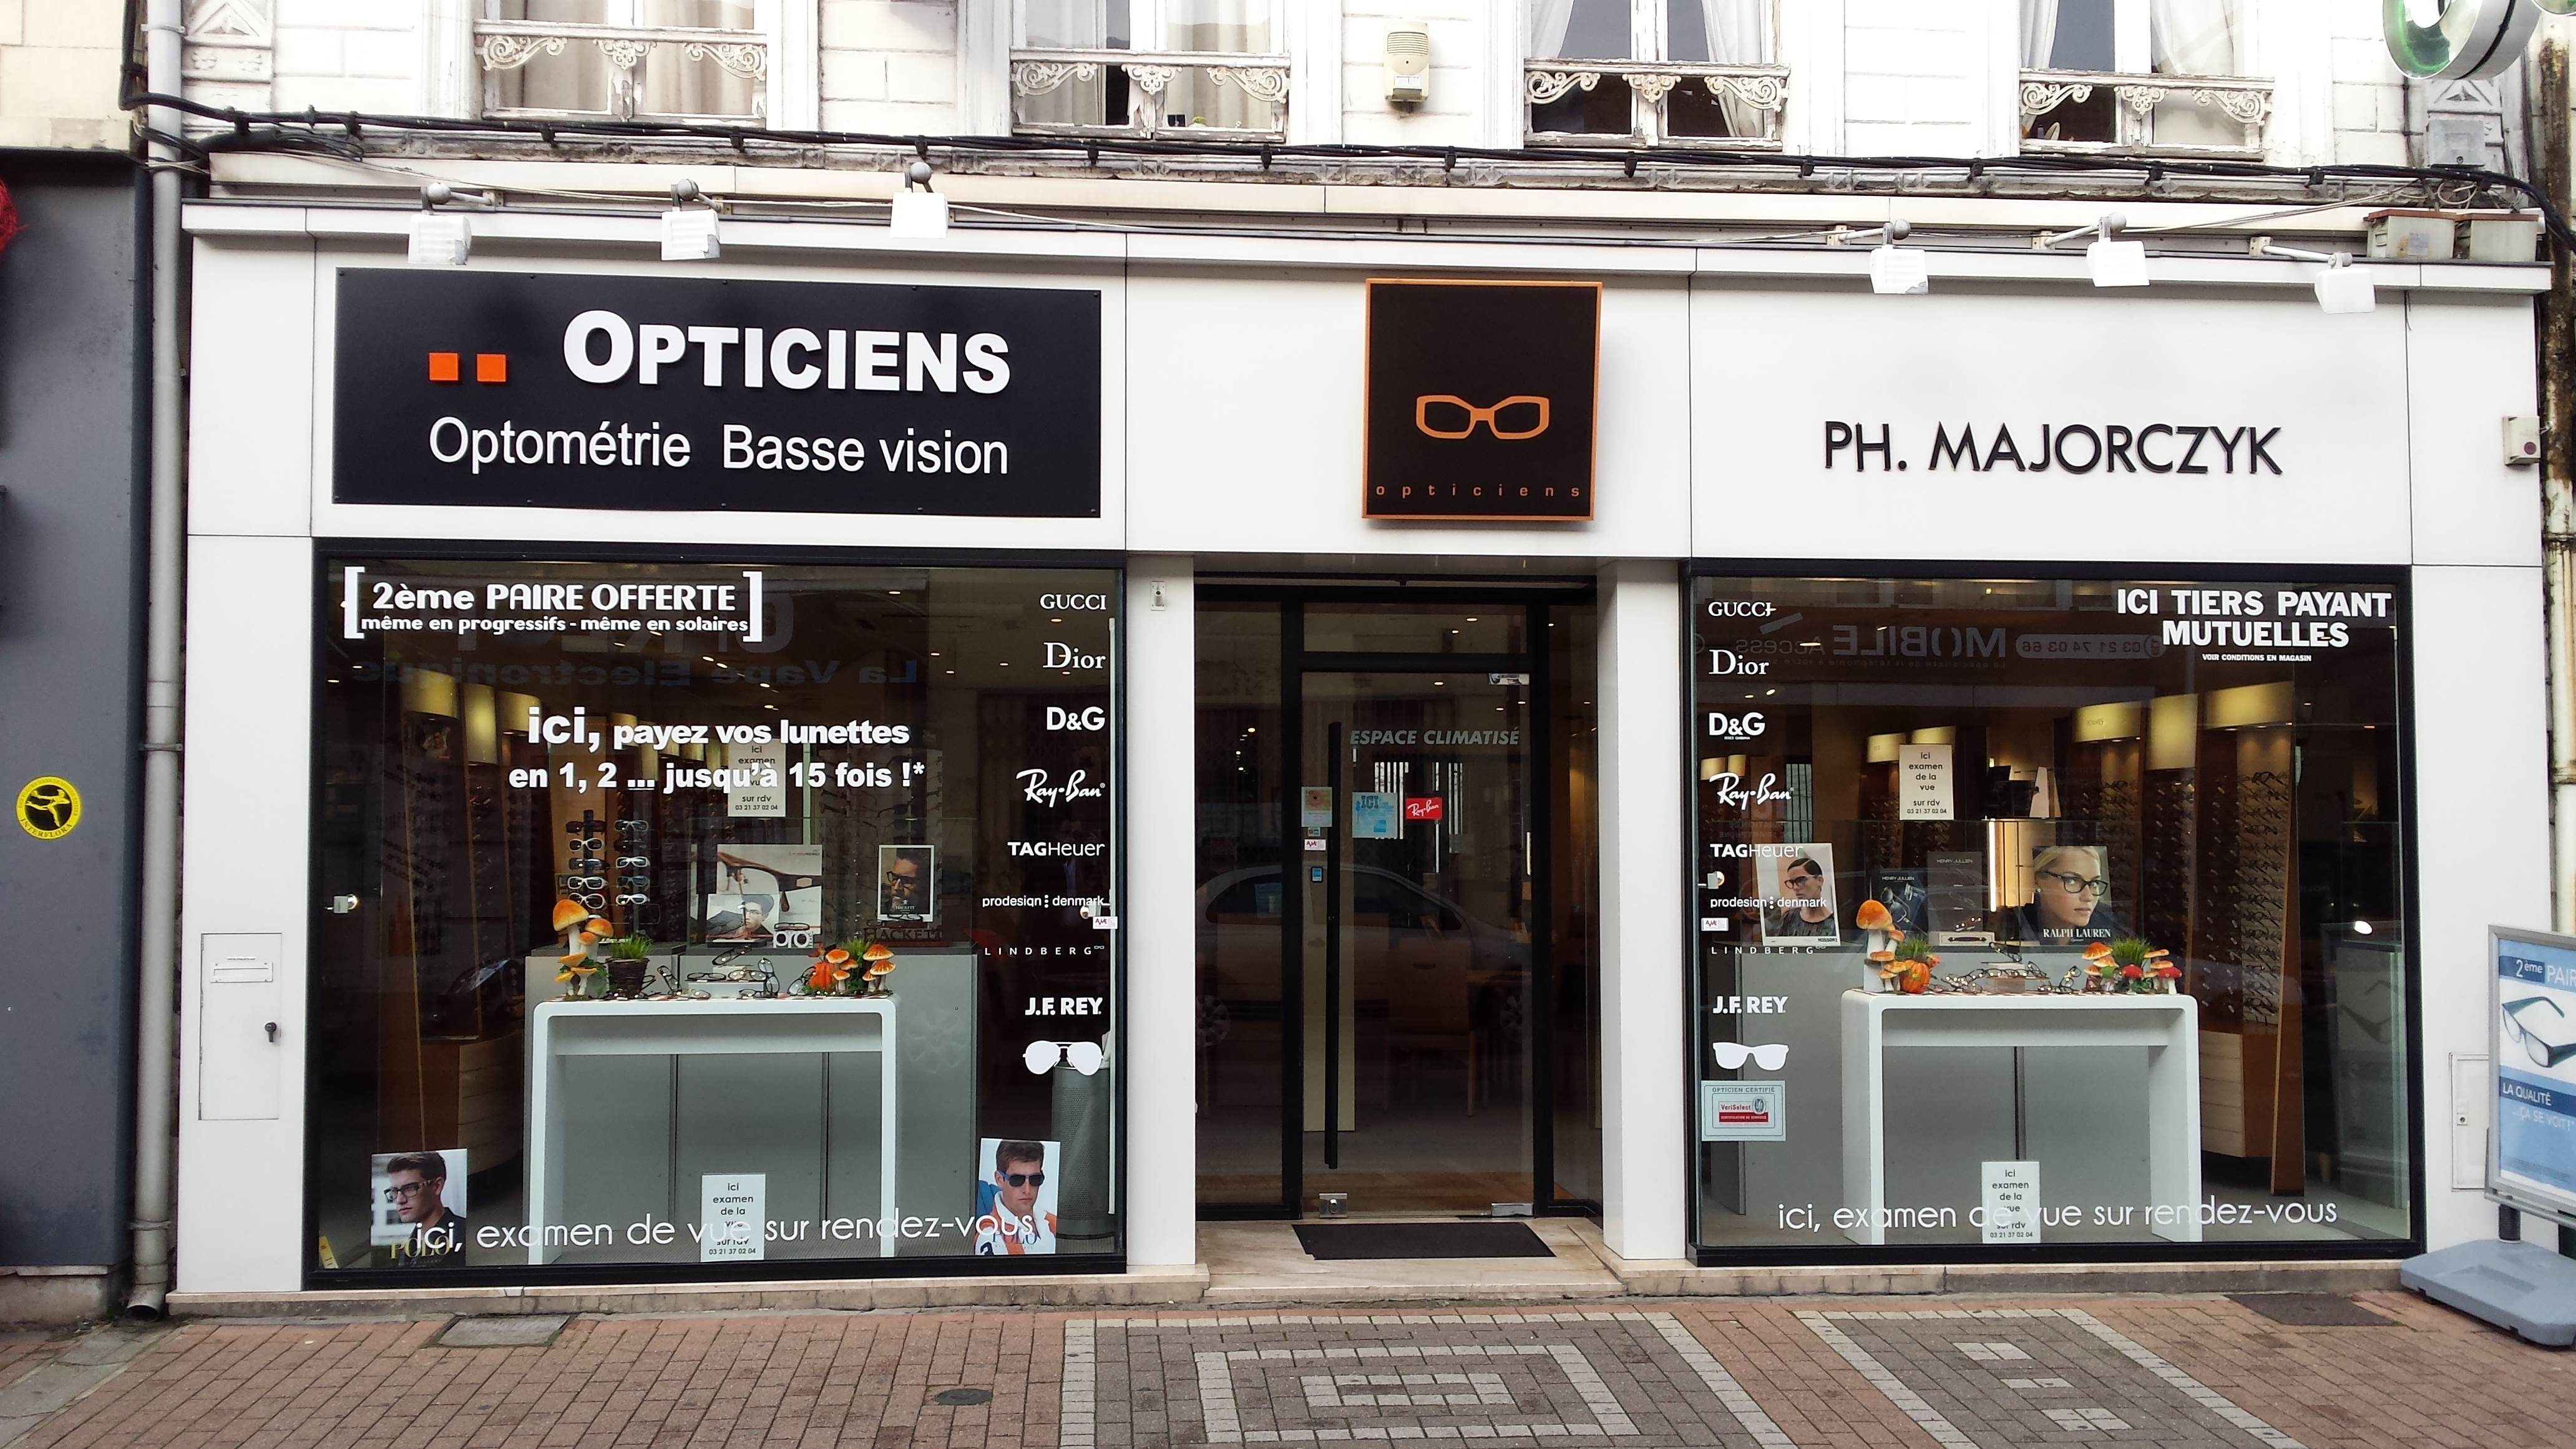 MAJORCZYK Opticiens Lunettes room